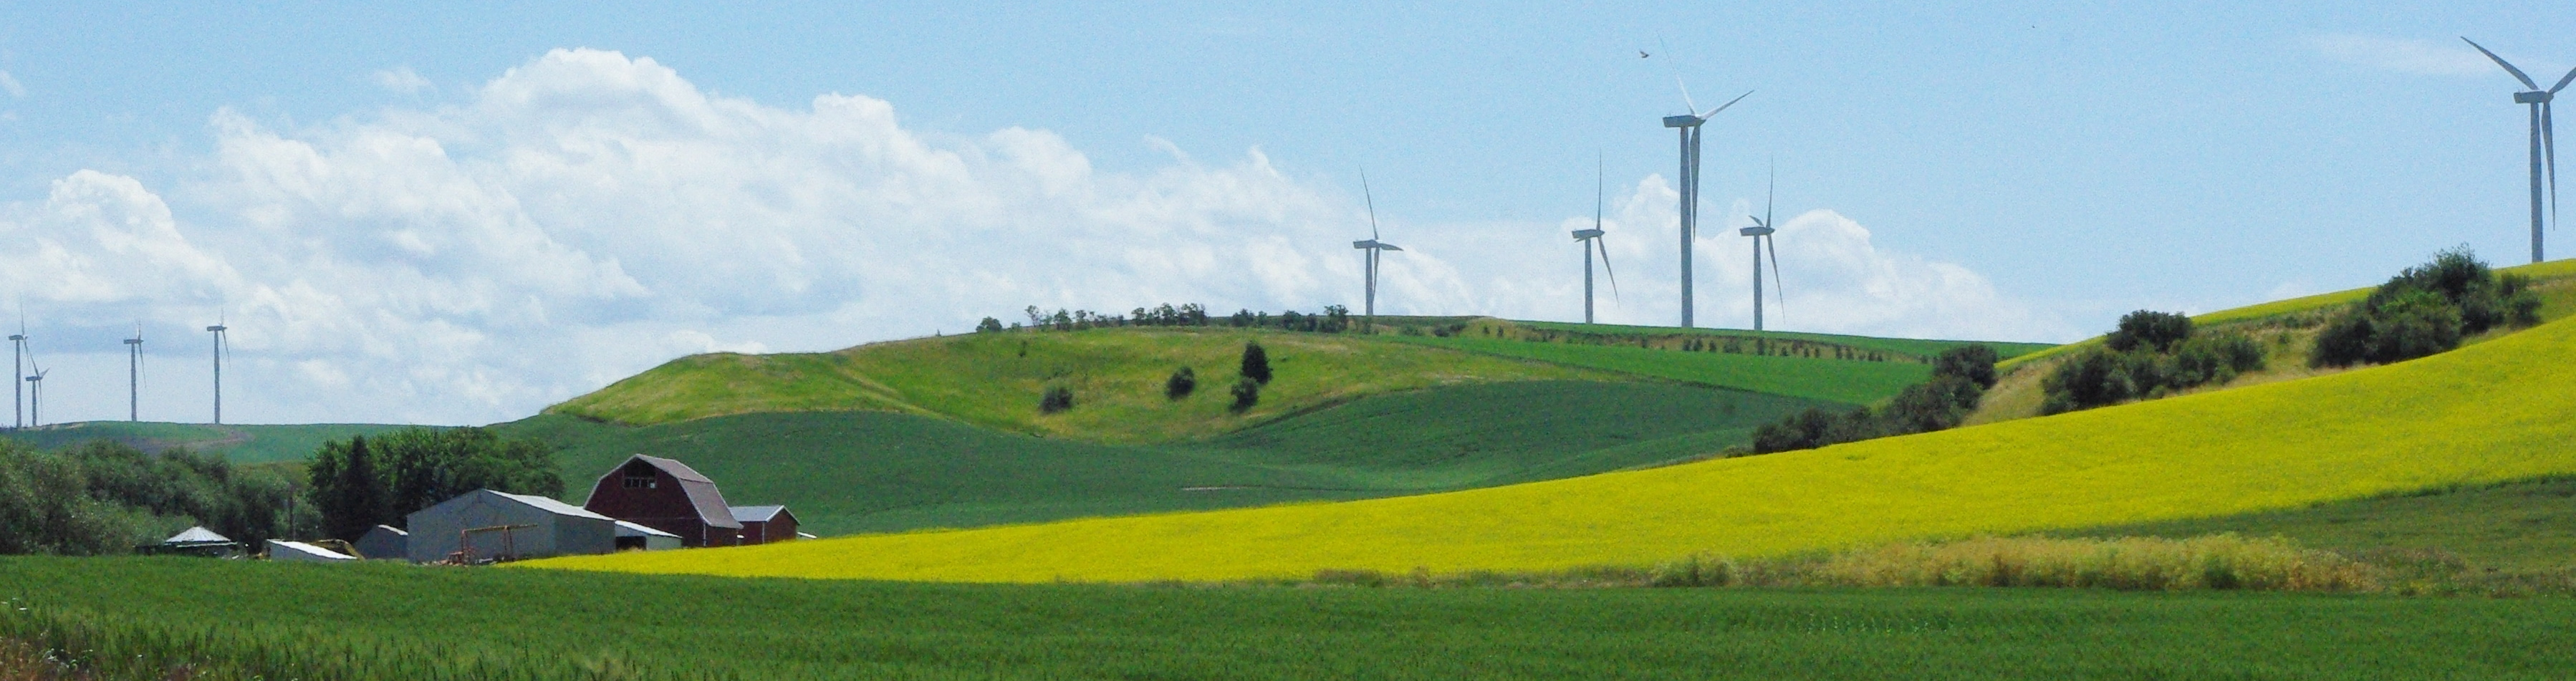 Landscape with a farmhouse, hills, and wind turbines.